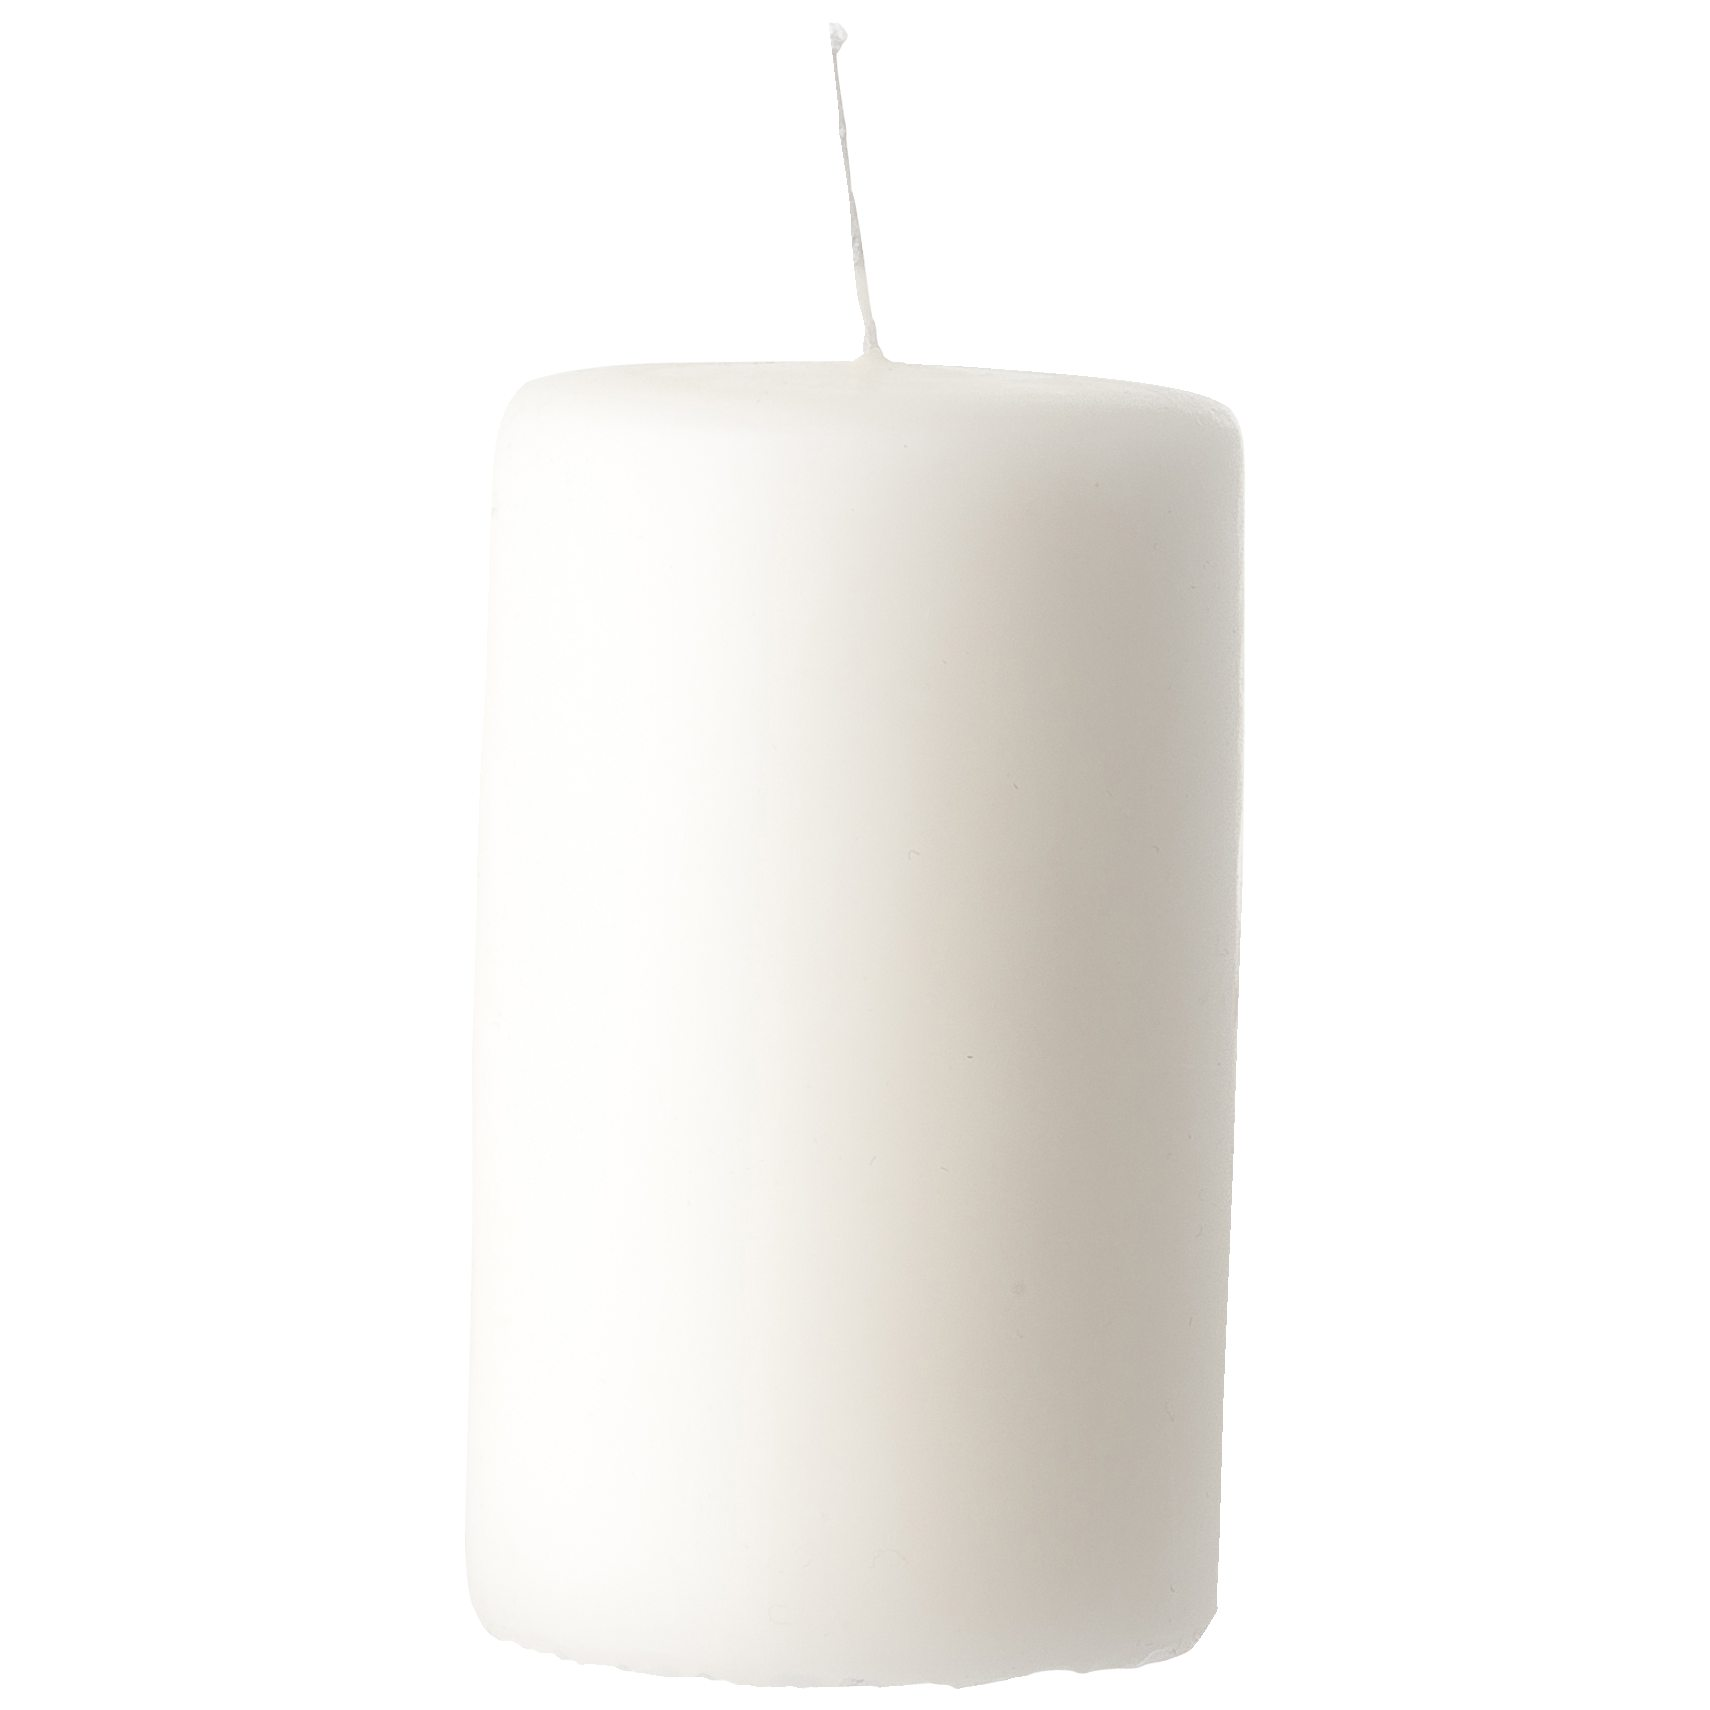 Candle Bloklys - Offwhite paraffin